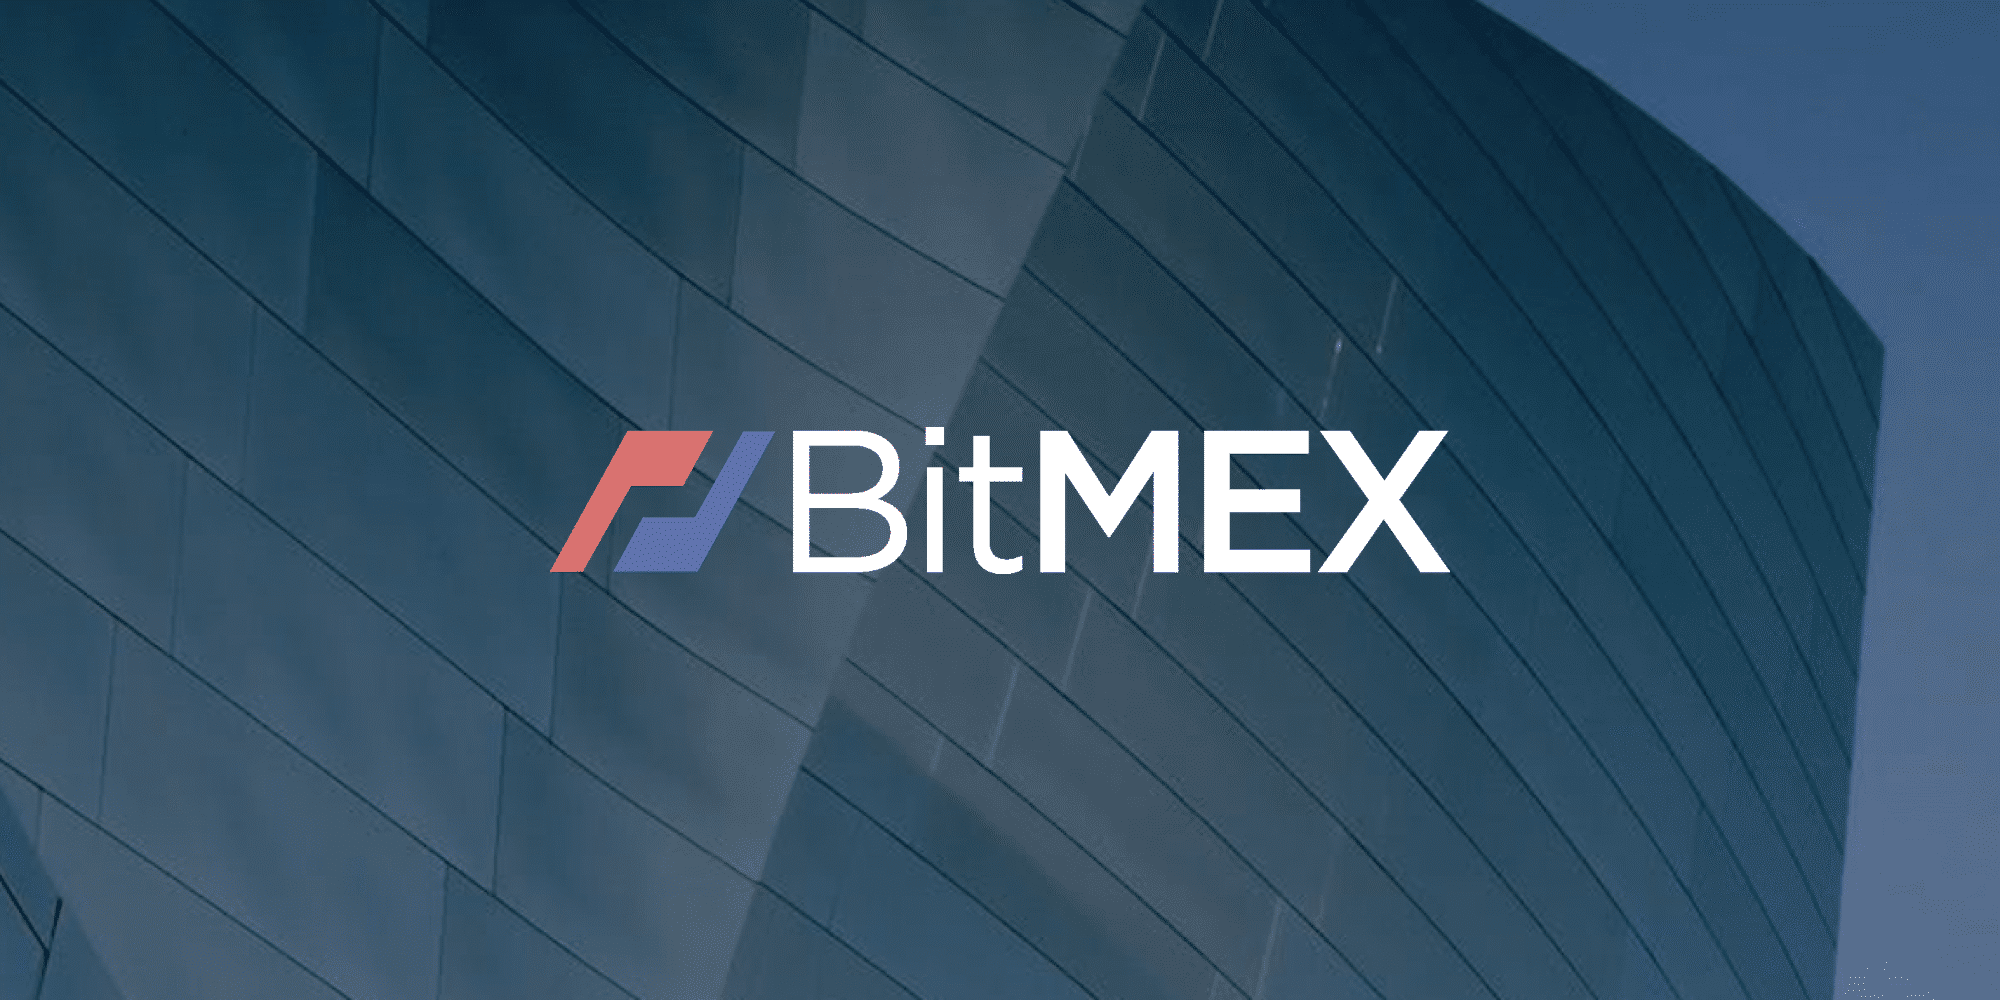 BitMEX: withdrawals are increasing bitcoin liquidity by 25%